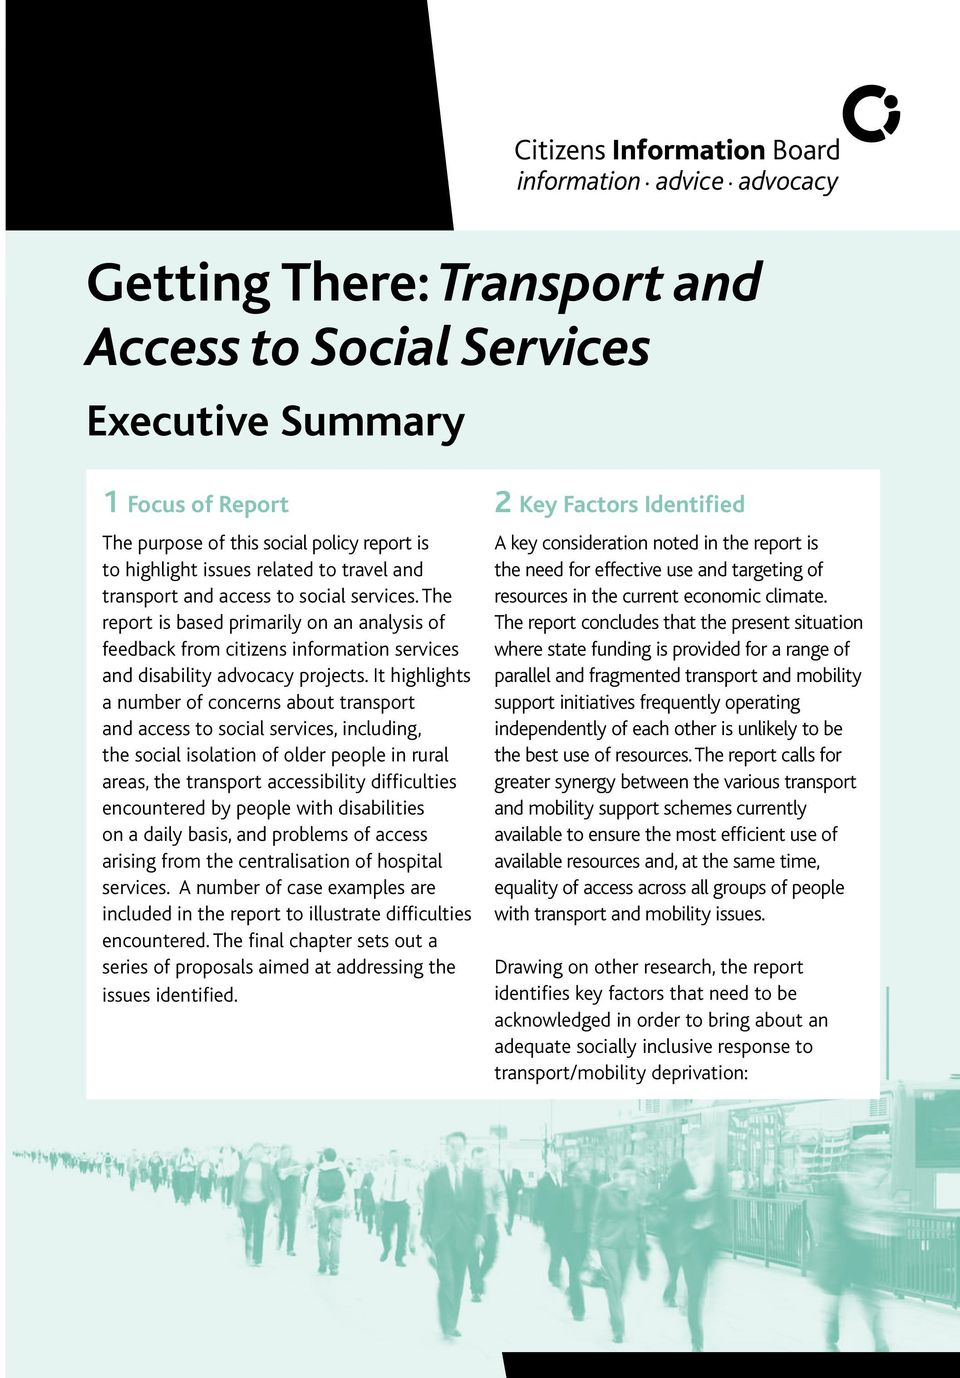 It highlights a number of concerns about transport and access to social services, including, the social isolation of older people in rural areas, the transport accessibility difficulties encountered